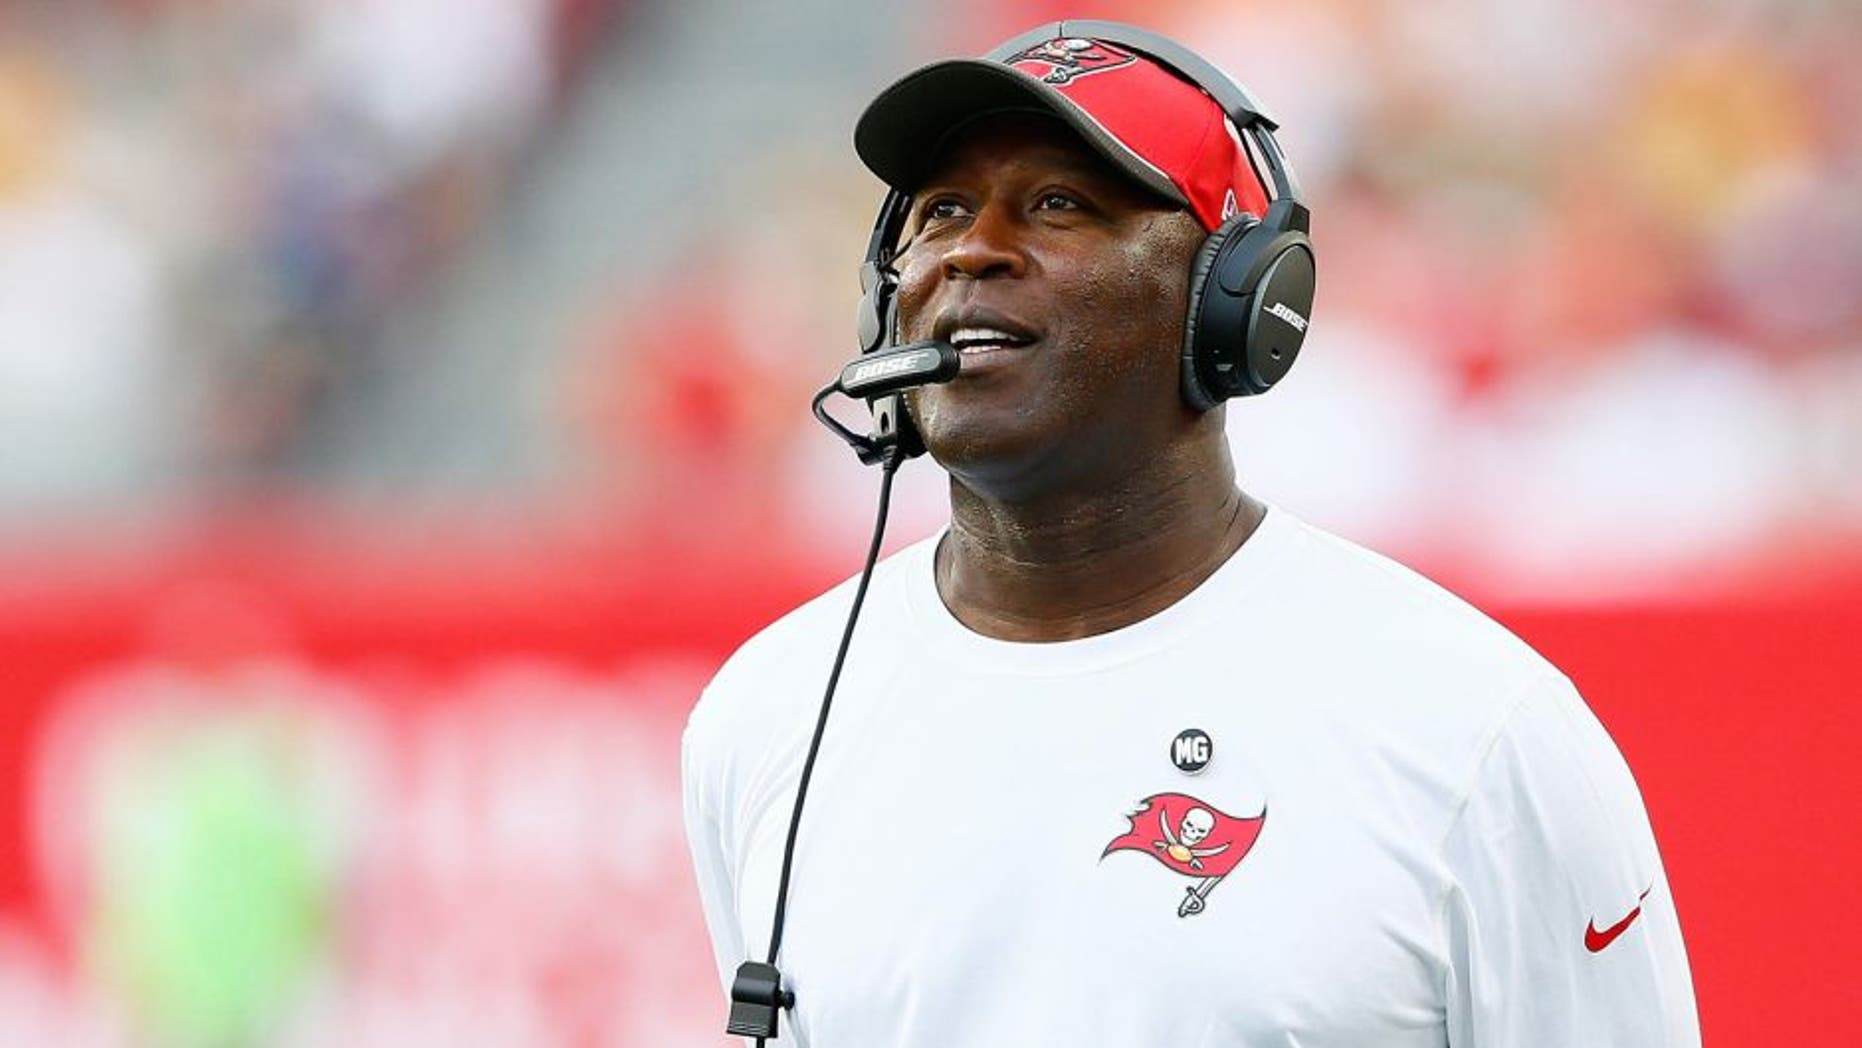 TAMPA, FL - DECEMBER 21: Head coach Lovie Smith of the Tampa Bay Buccaneers looks on during the game against the Green Bay Packers at Raymond James Stadium on December 21, 2014 in Tampa, Florida. (Photo by Kevin C. Cox/Getty Images)